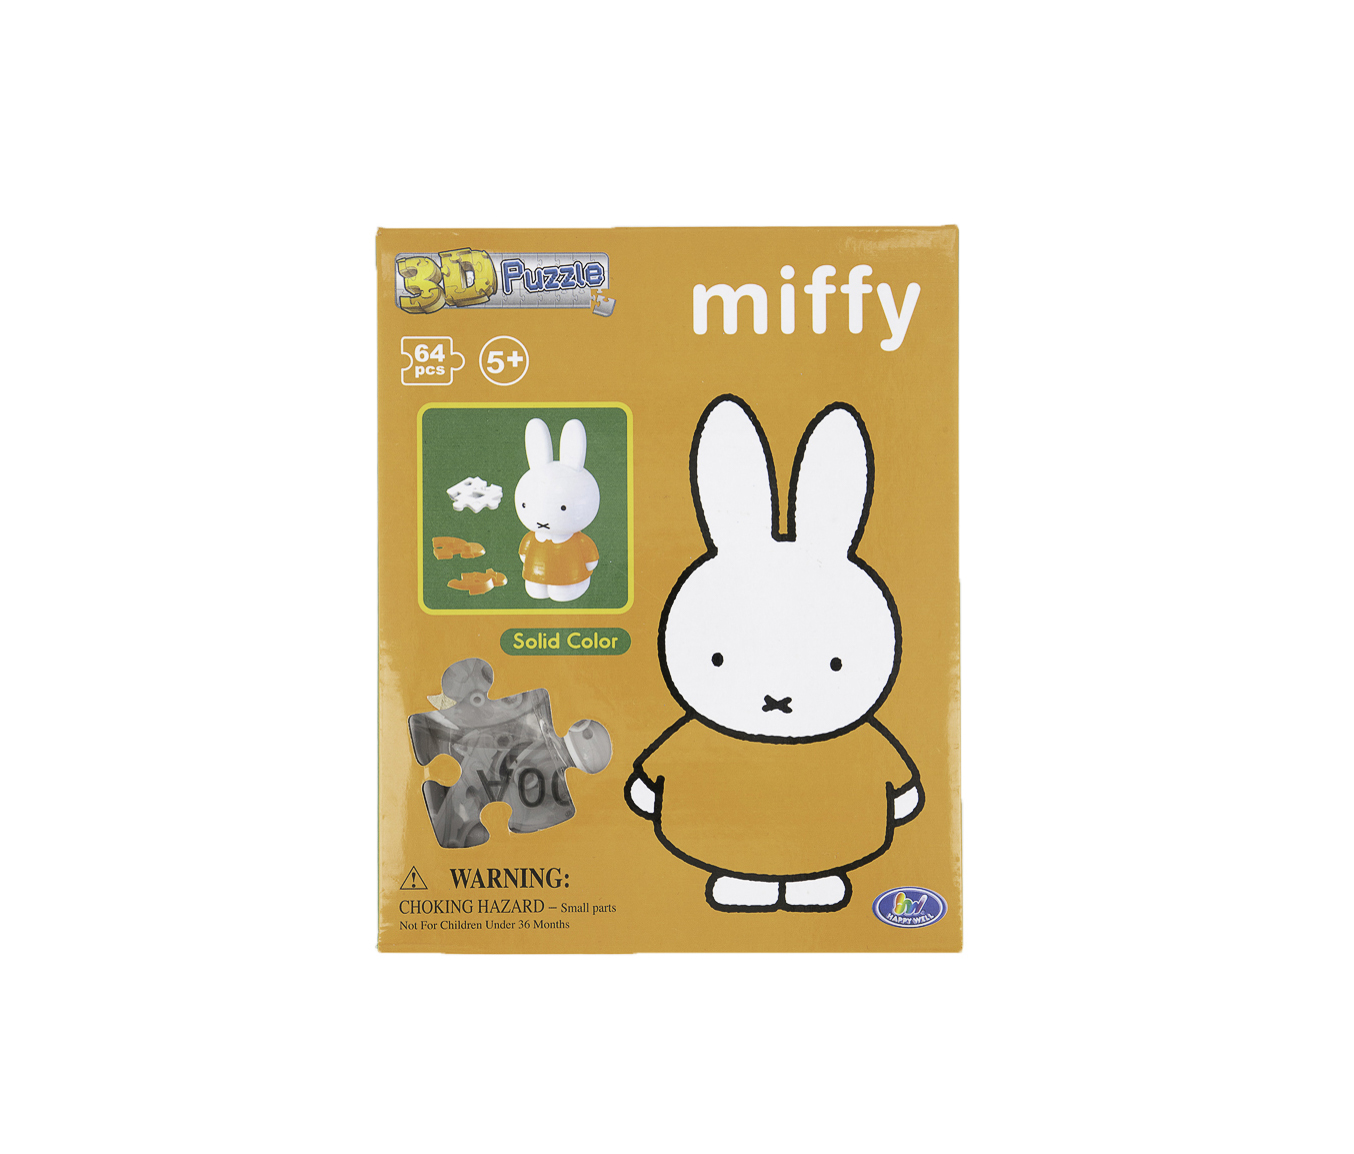 Miffy 3D Puzzle 64 Pcs, Orange